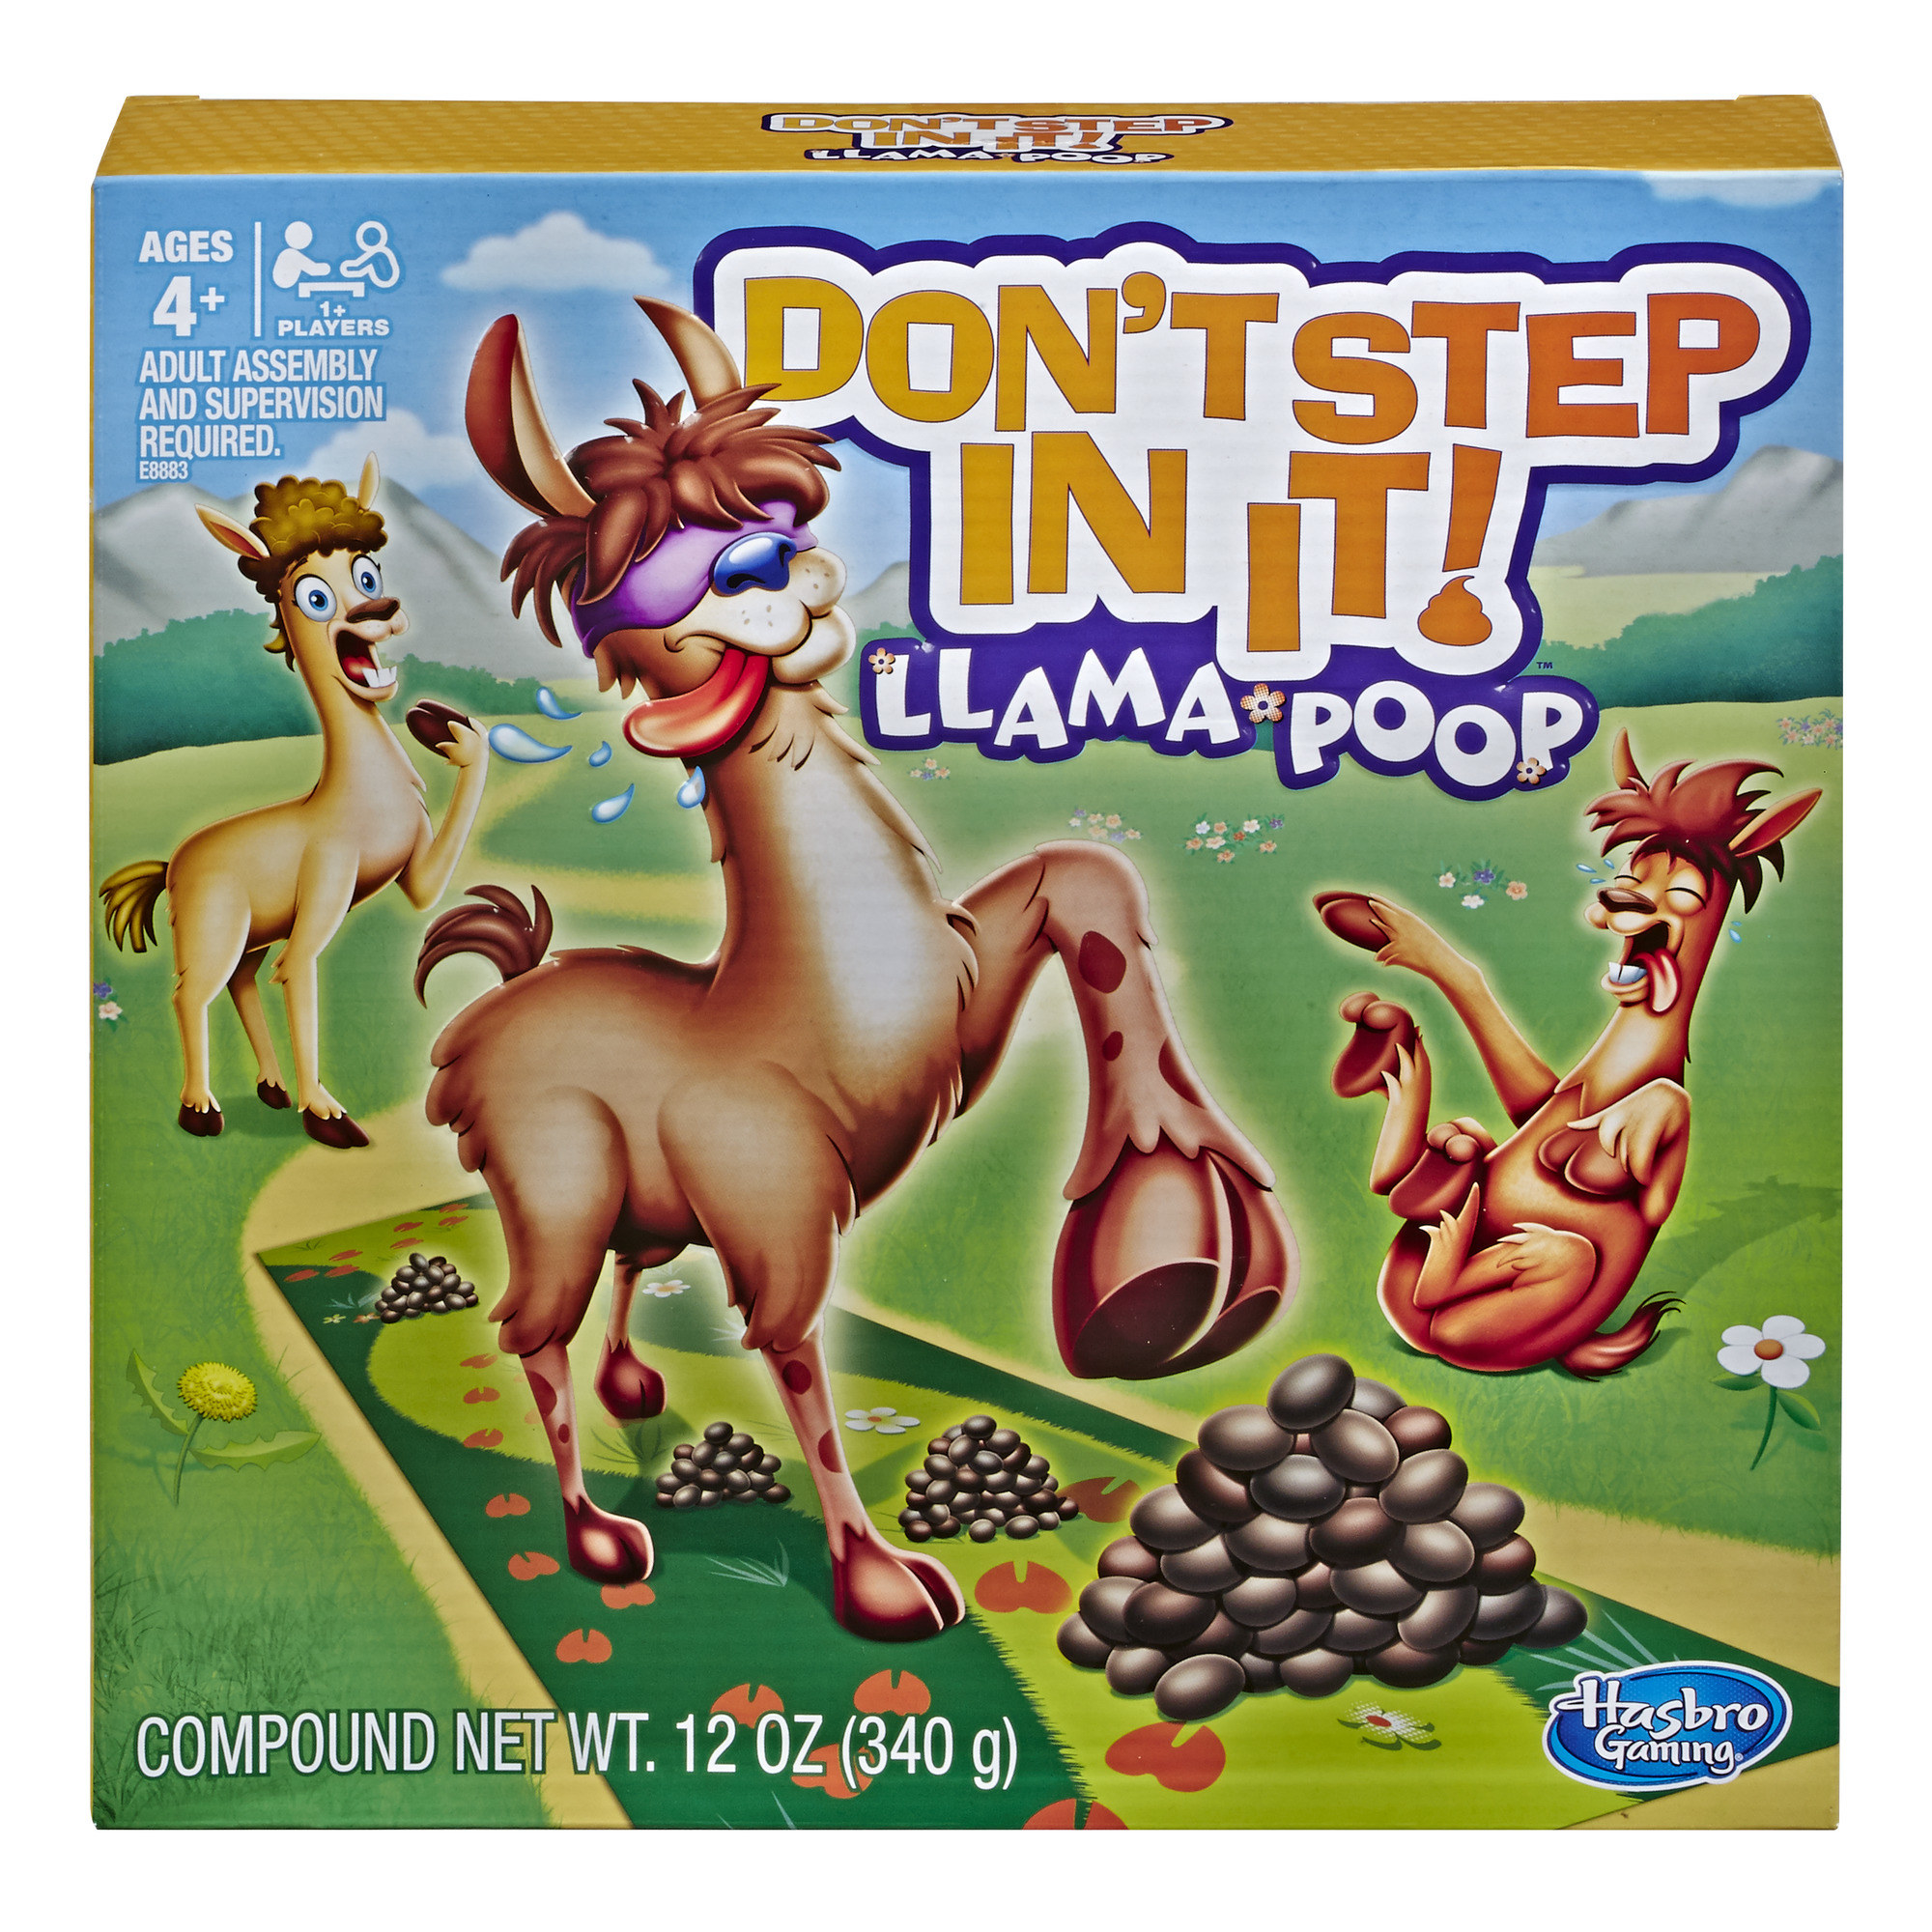 The cover of the game with illustrated llamas